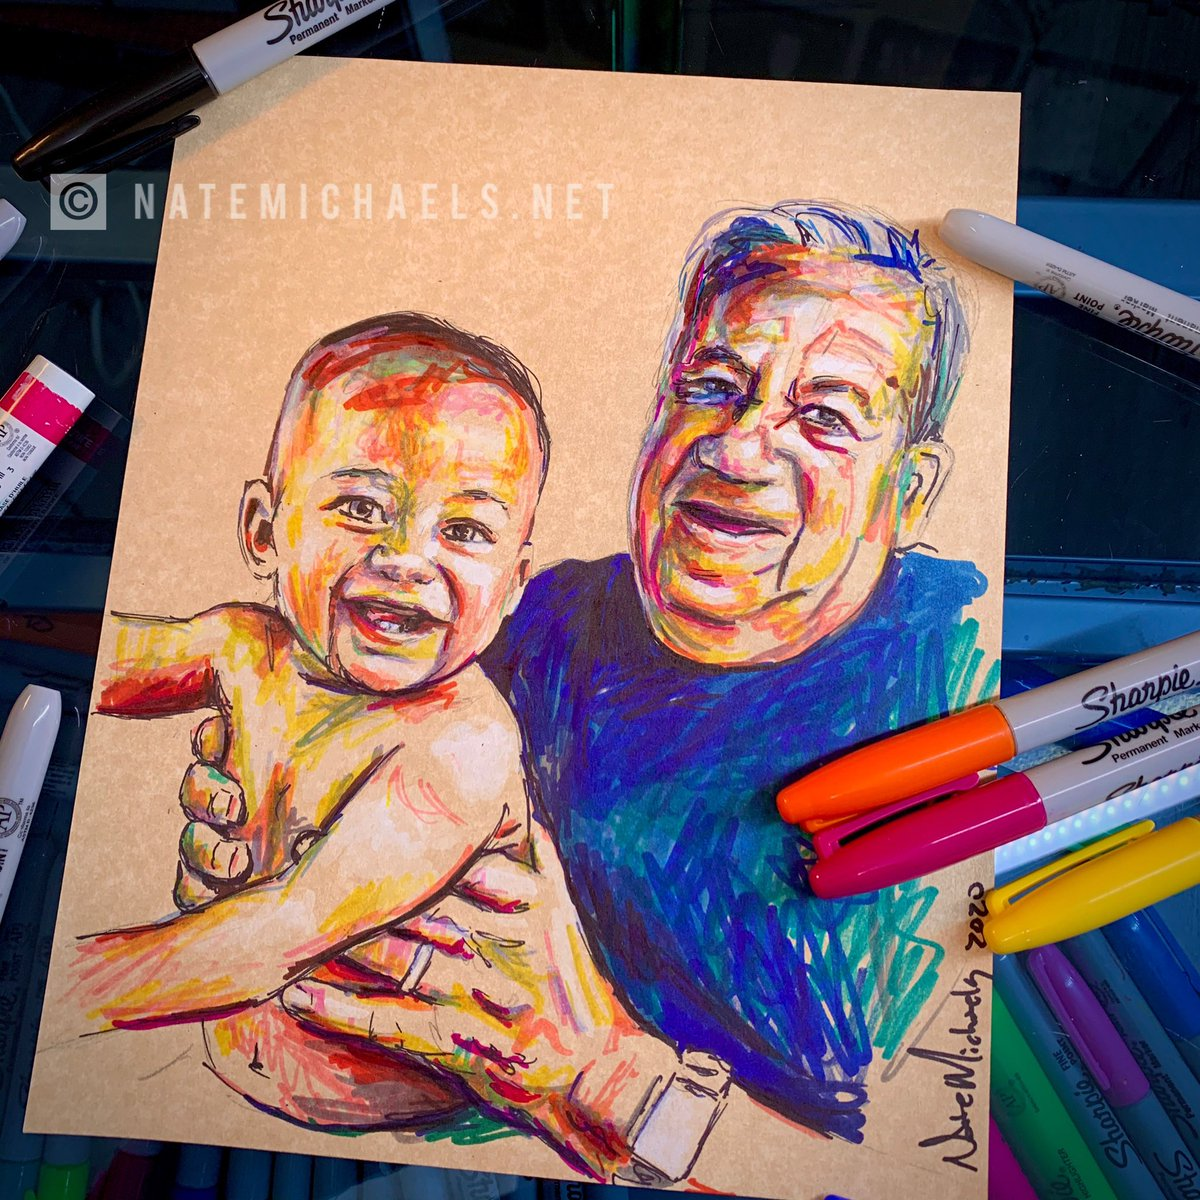 """Drawing memories  DM me here or send me a message at http://NateMichaels.net if you'd like one  .  #sharpie markers on 8""""x10"""" parchment paper  #natemichaels #commissionopen #portraitartist #portraitdrawing #sketch #drawing #dailyart #art #familyportrait #dailydoodlepic.twitter.com/Izj4nUPgXh"""